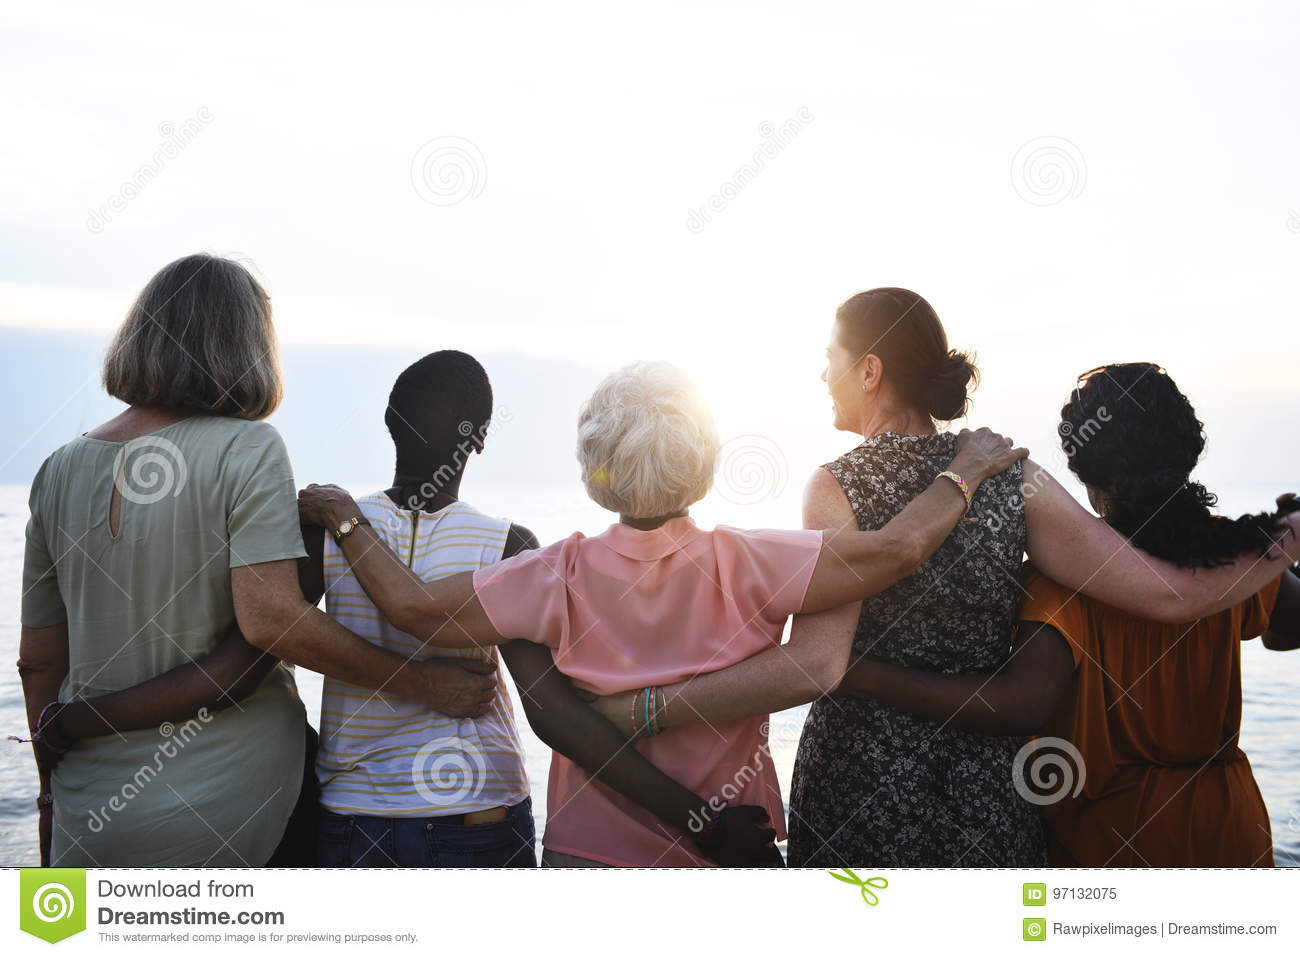 Rear view of diverse senior women standing together at the beach